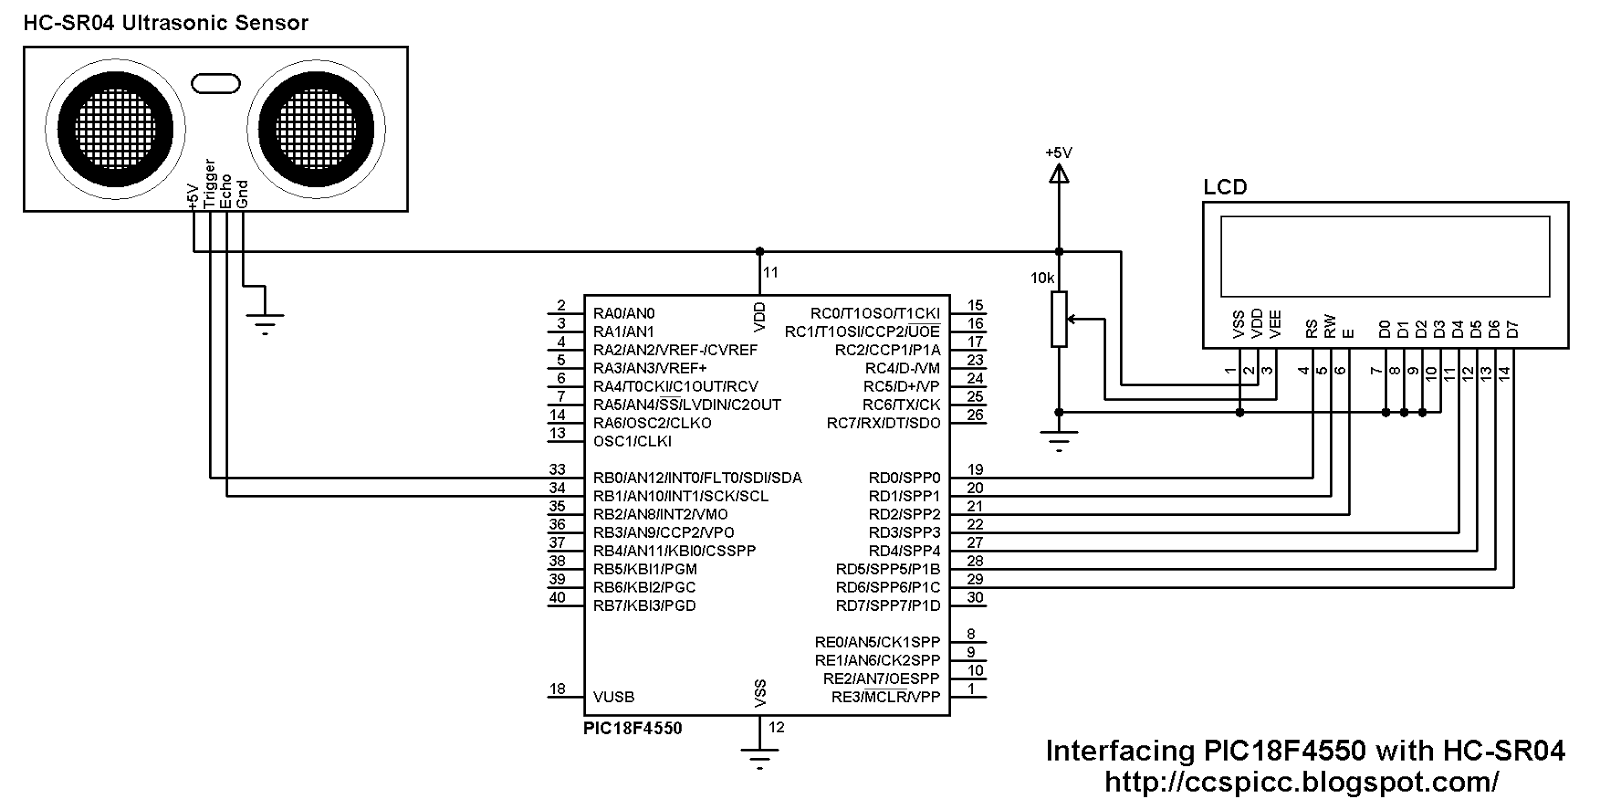 Ultrasonic Sensor Diagram on level sensor diagram, switch diagram, pressure sensor diagram, photoelectric sensor diagram, ir sensor diagram, oxygen sensor diagram, timer diagram, flow sensor diagram, instrumentation diagram, proximity sensor diagram, speed sensor diagram, light sensor diagram, hall effect sensor diagram, motion sensor diagram, radar sensor diagram, infrared sensor diagram, capacitive sensor diagram, magnetic sensor diagram, sound sensor diagram, microwave sensor diagram,